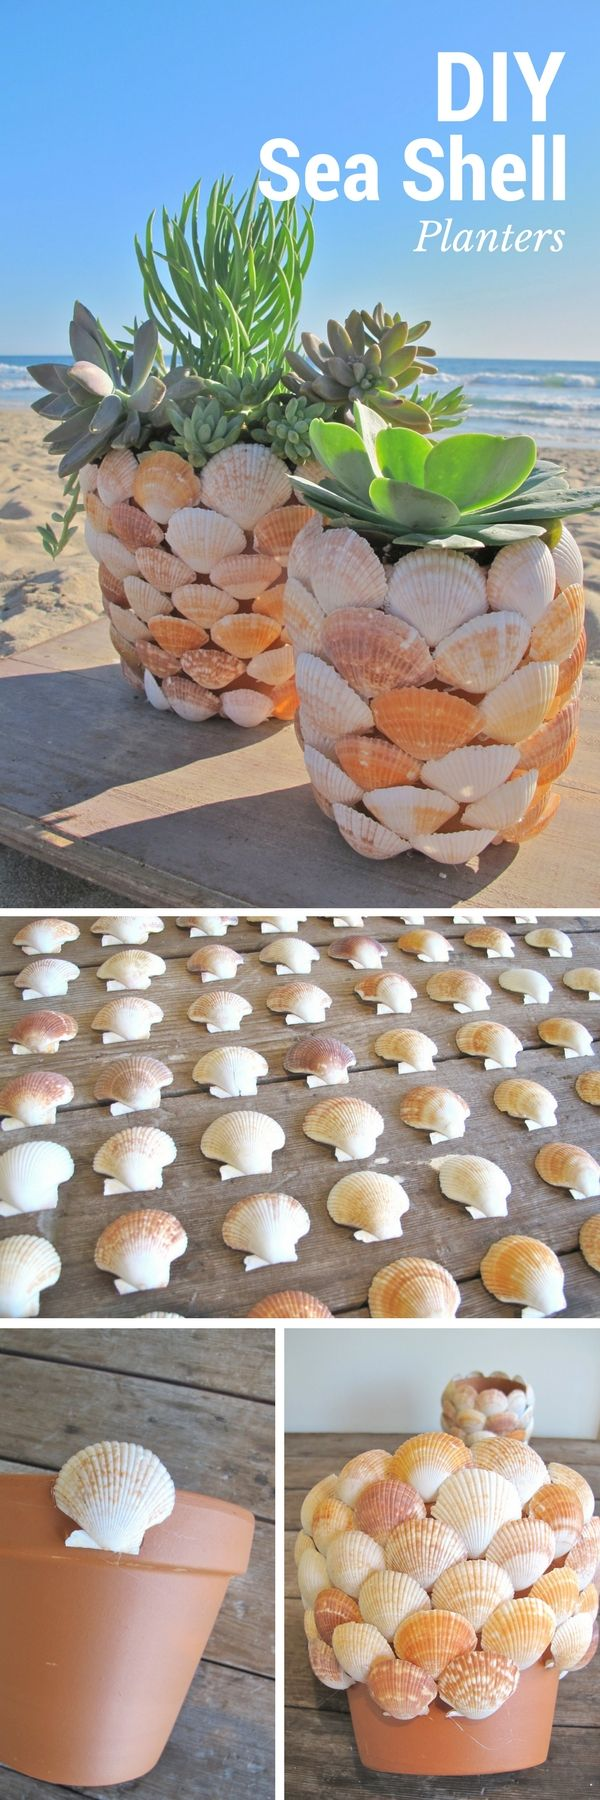 Check out the tutorial on how to make DIY sea shell planters (great for summer decor) @istandarddesign